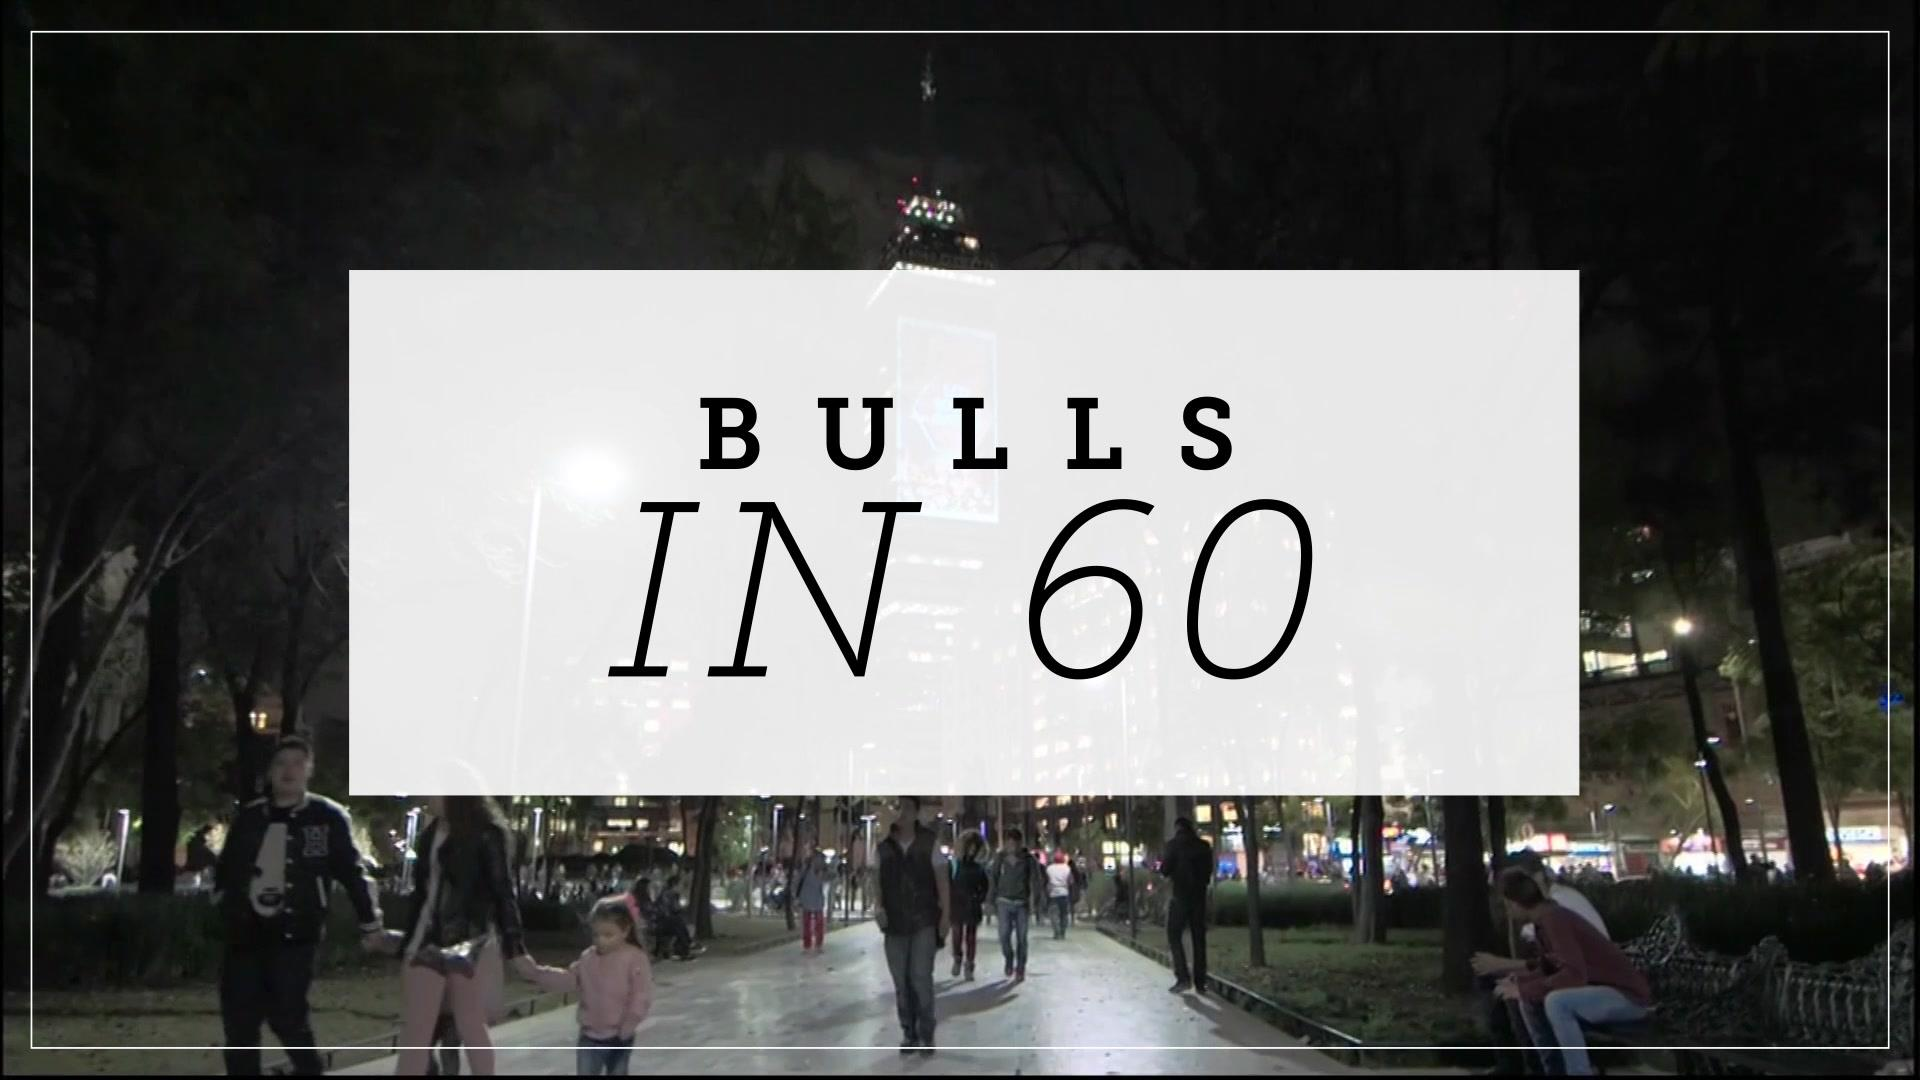 Bulls in 60: Parker sees only 4 minutes in loss to Magic